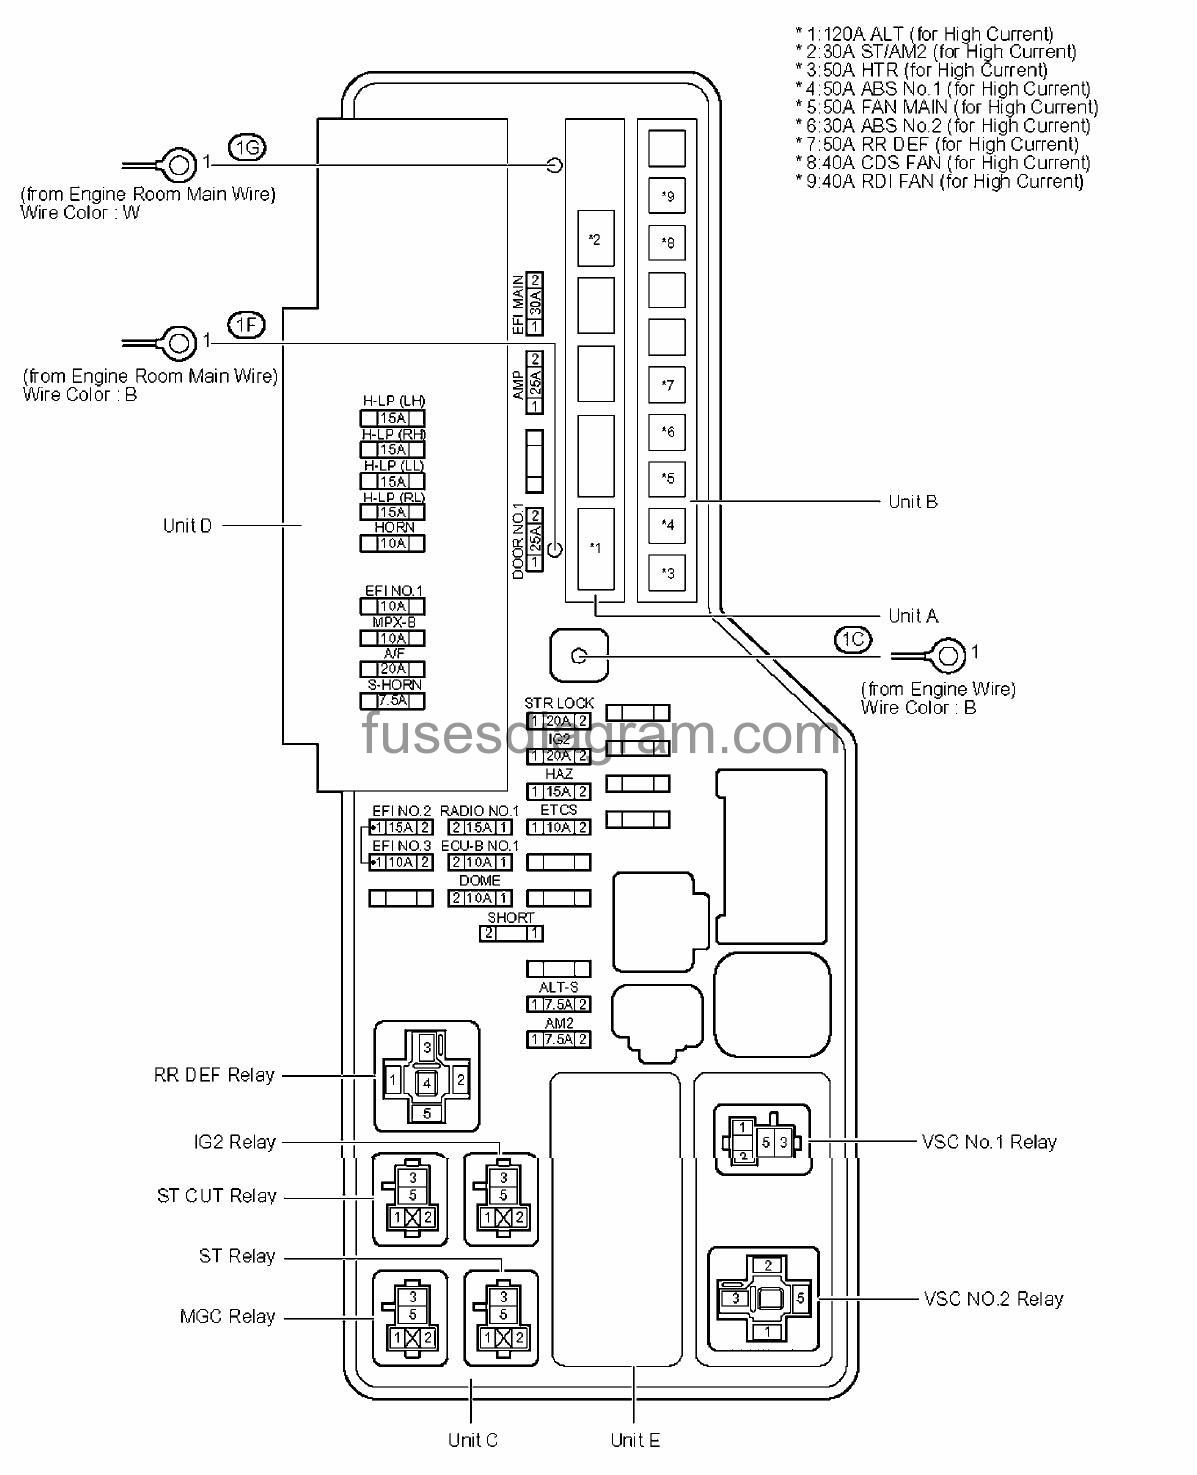 1995 Toyota Camry Fuse Diagram Archive Of Automotive Wiring 95 Radio Harness 98 Schematics Rh Thyl Co Uk Starter